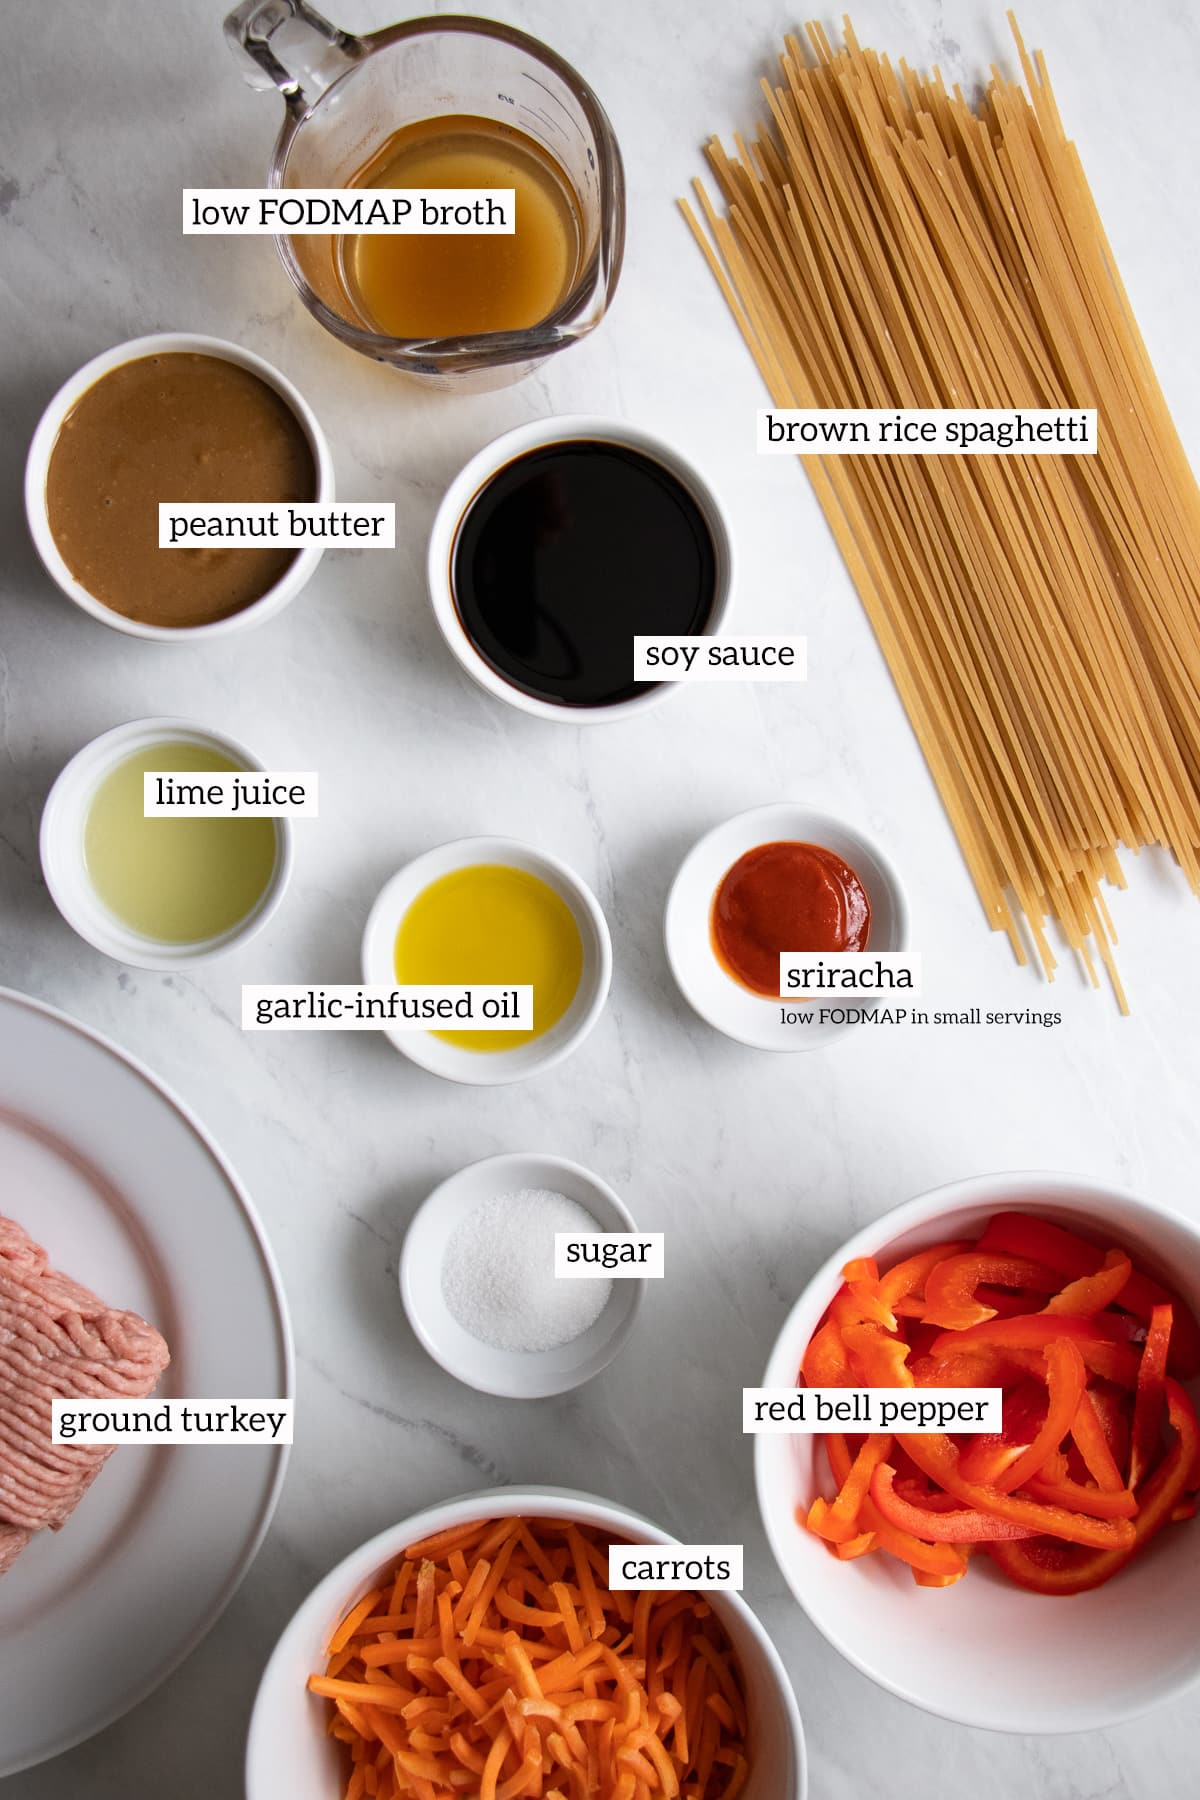 Ingredients needed for low FODMAP Thai peanut noodles are measured out into individual white dishes.